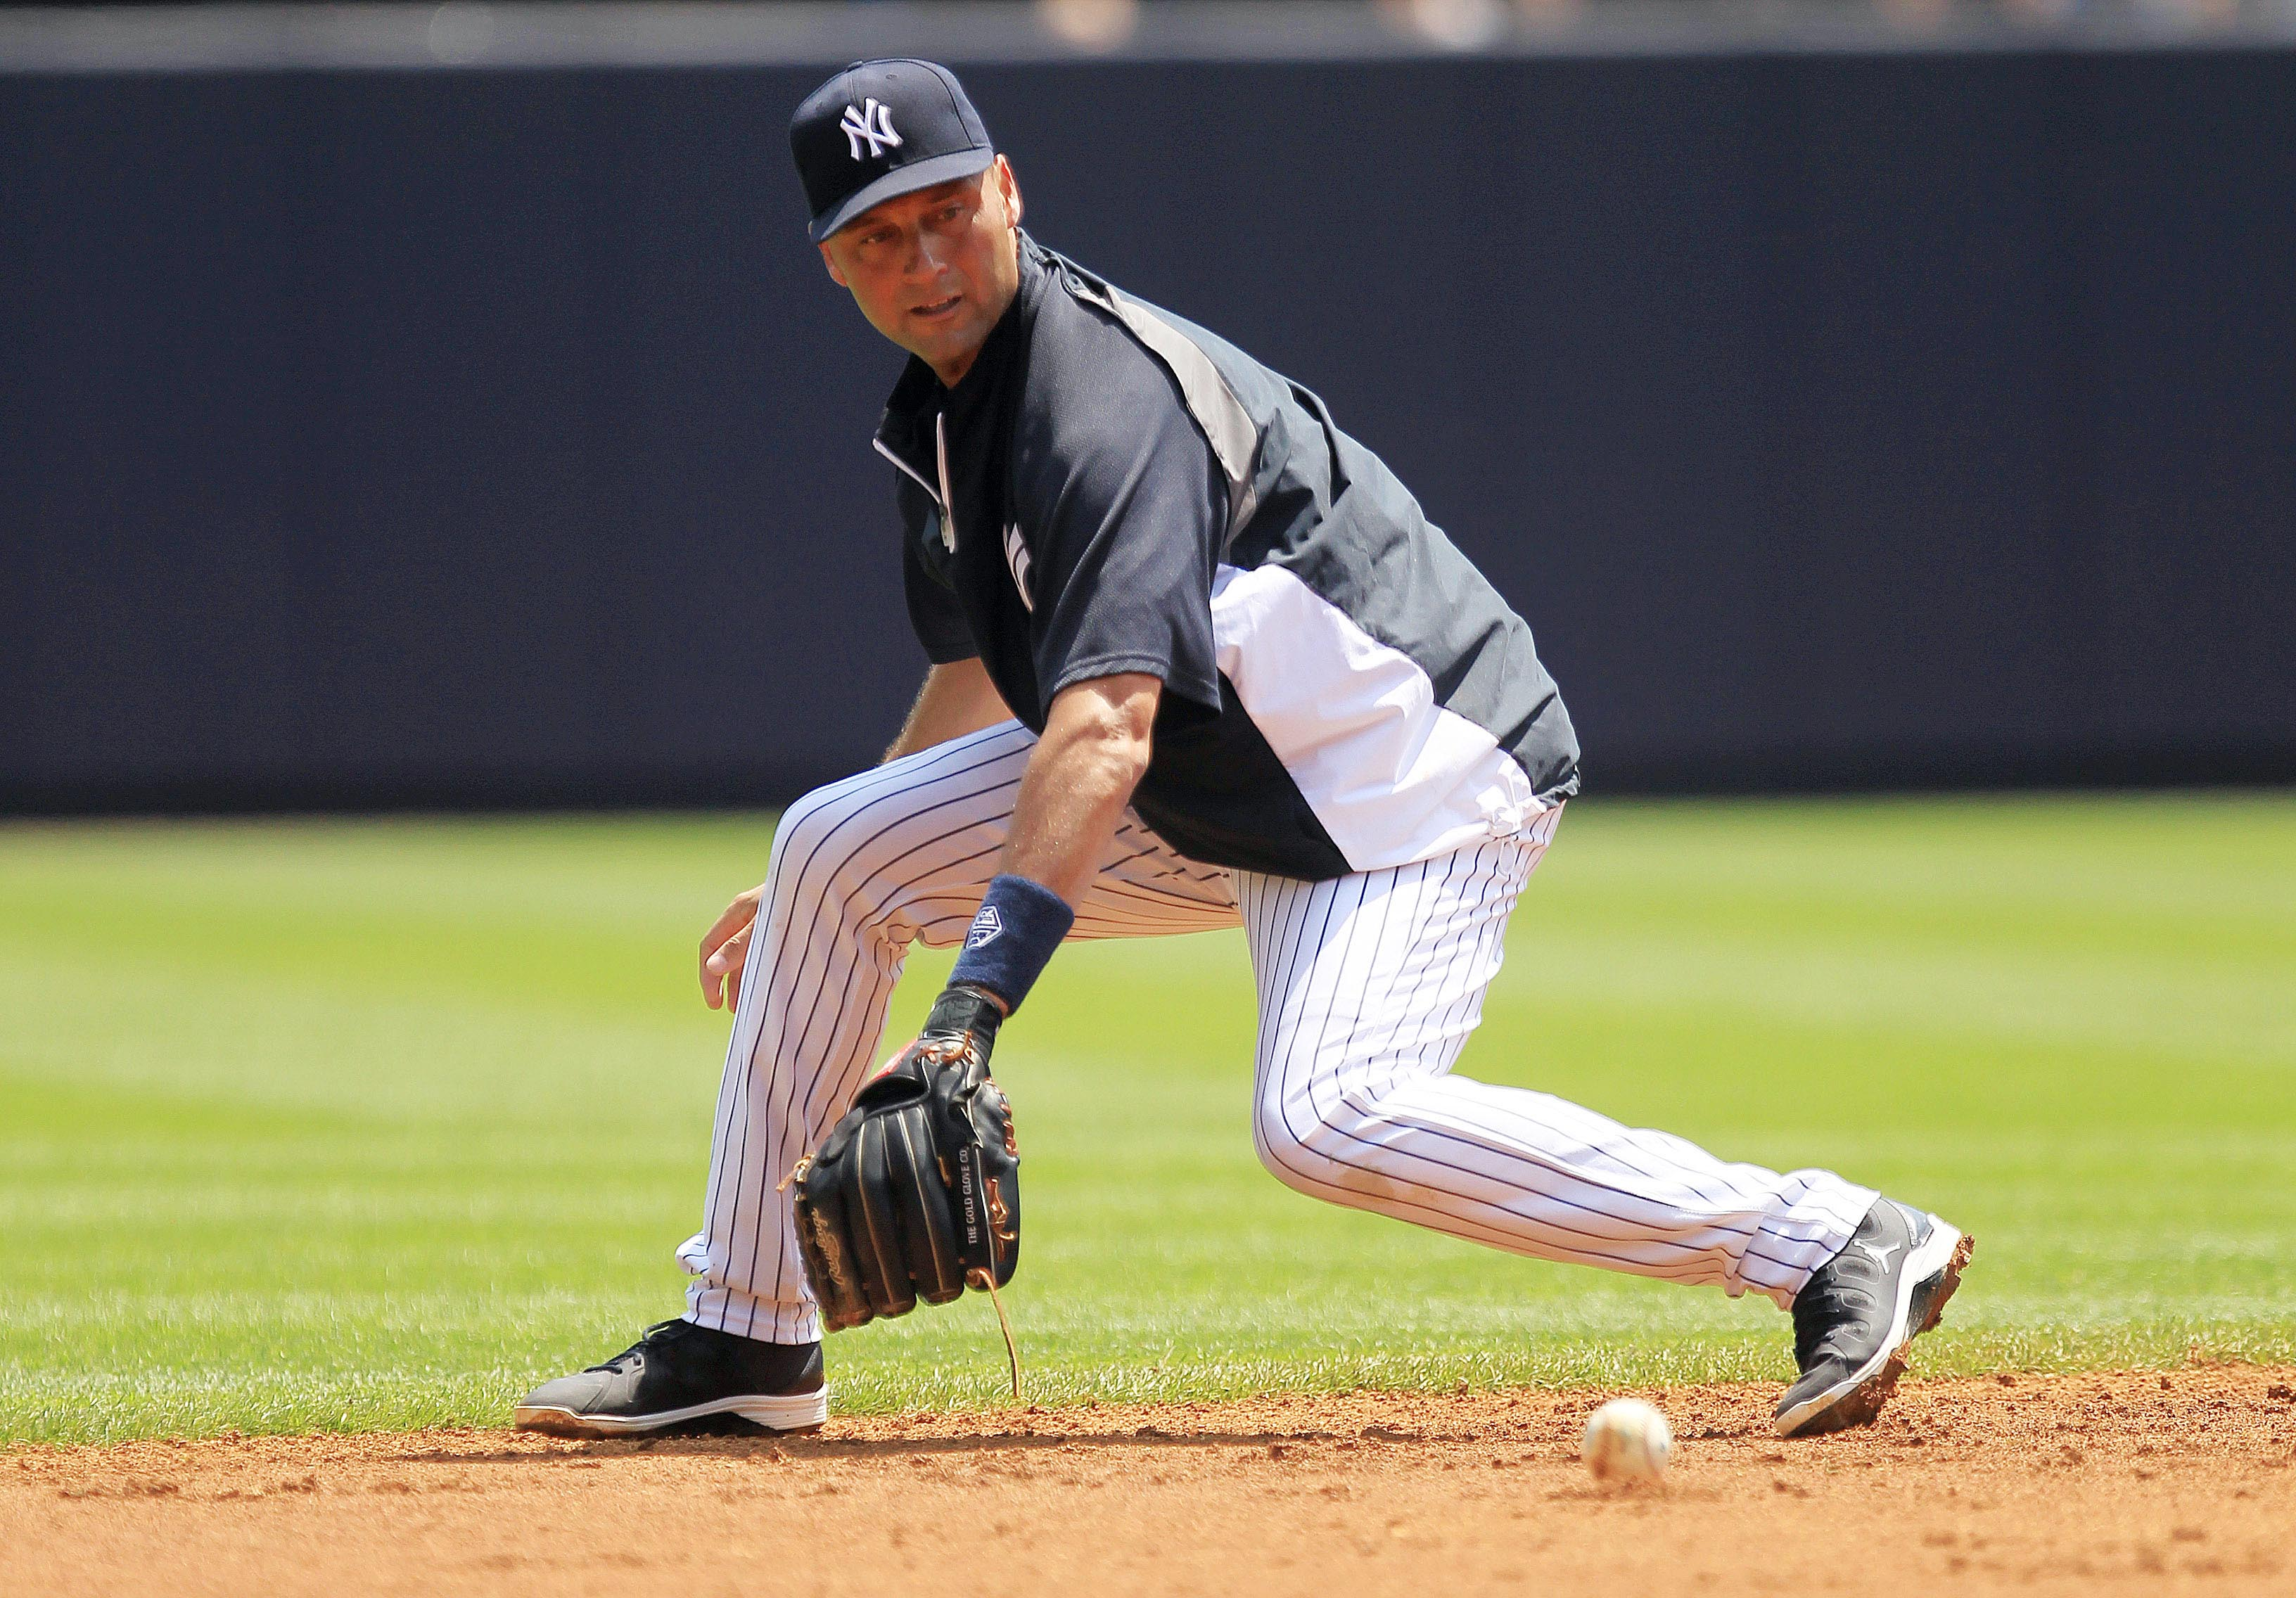 Eight months after surgery, Derek Jeter is ready to begin a minor league rehab assignment. (USATSI)